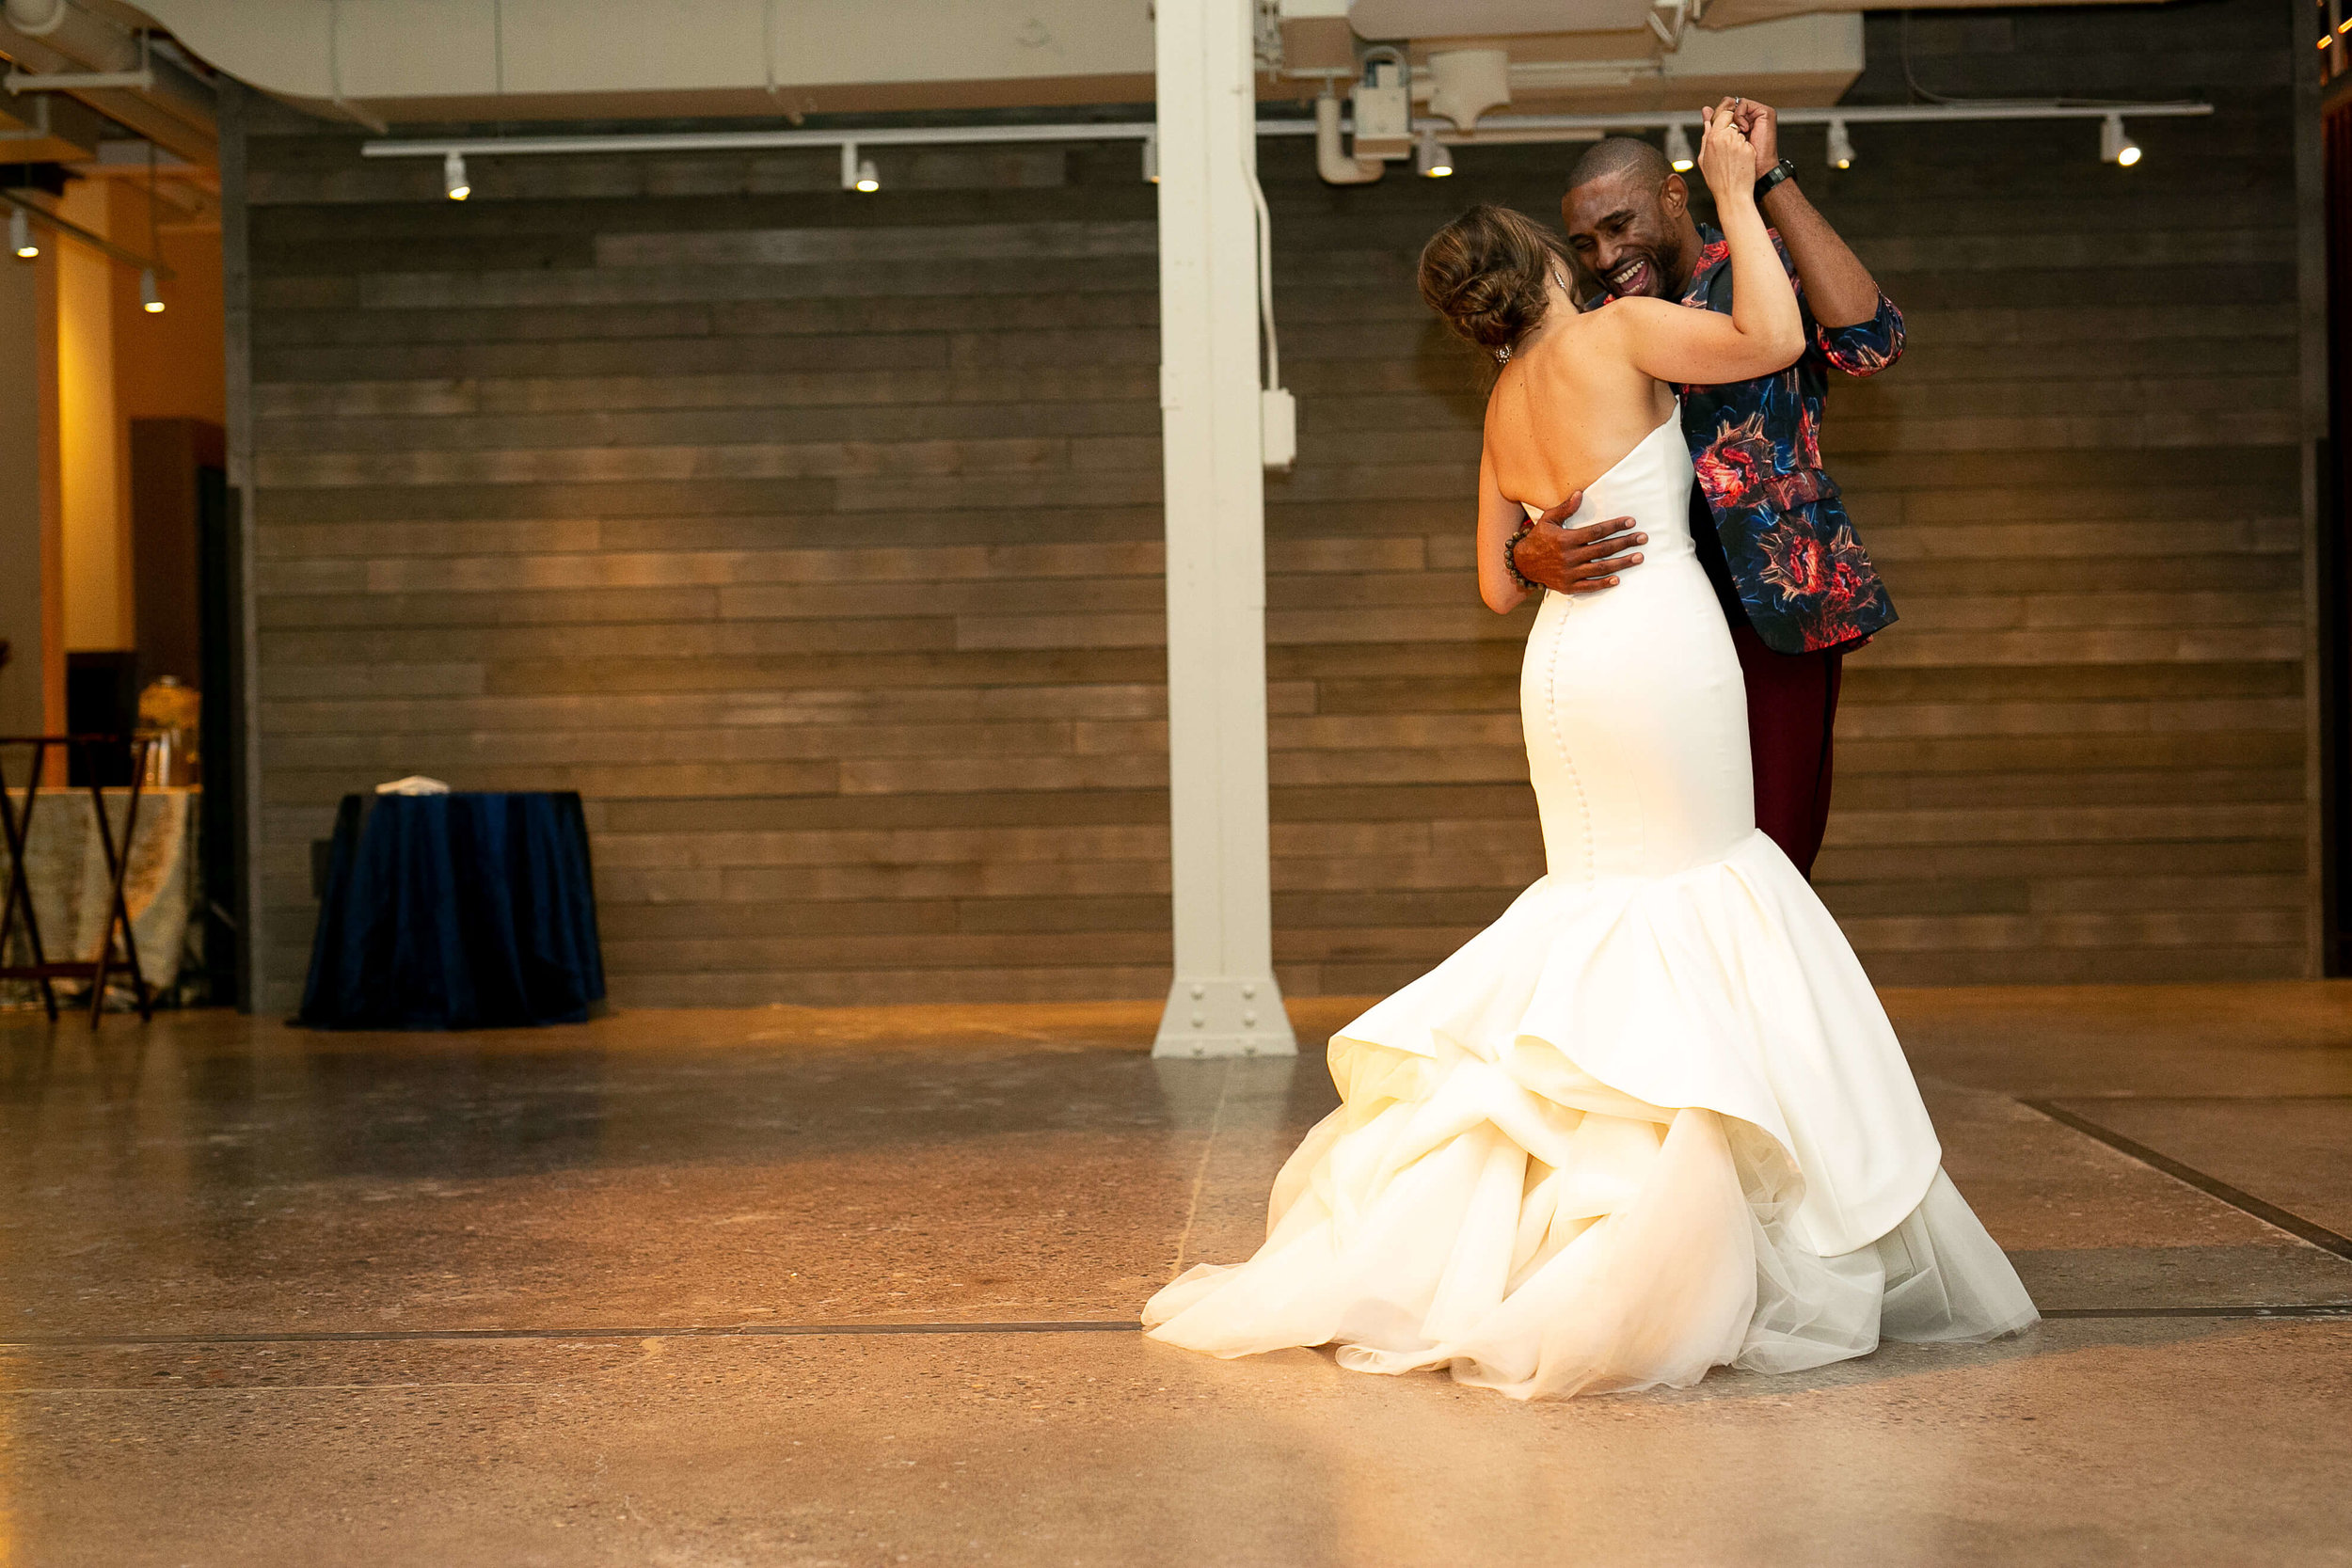 110Alice HQ Photography - Machine Shop Minneapolis - Sixpence Events and Planning wedding planner.JPG